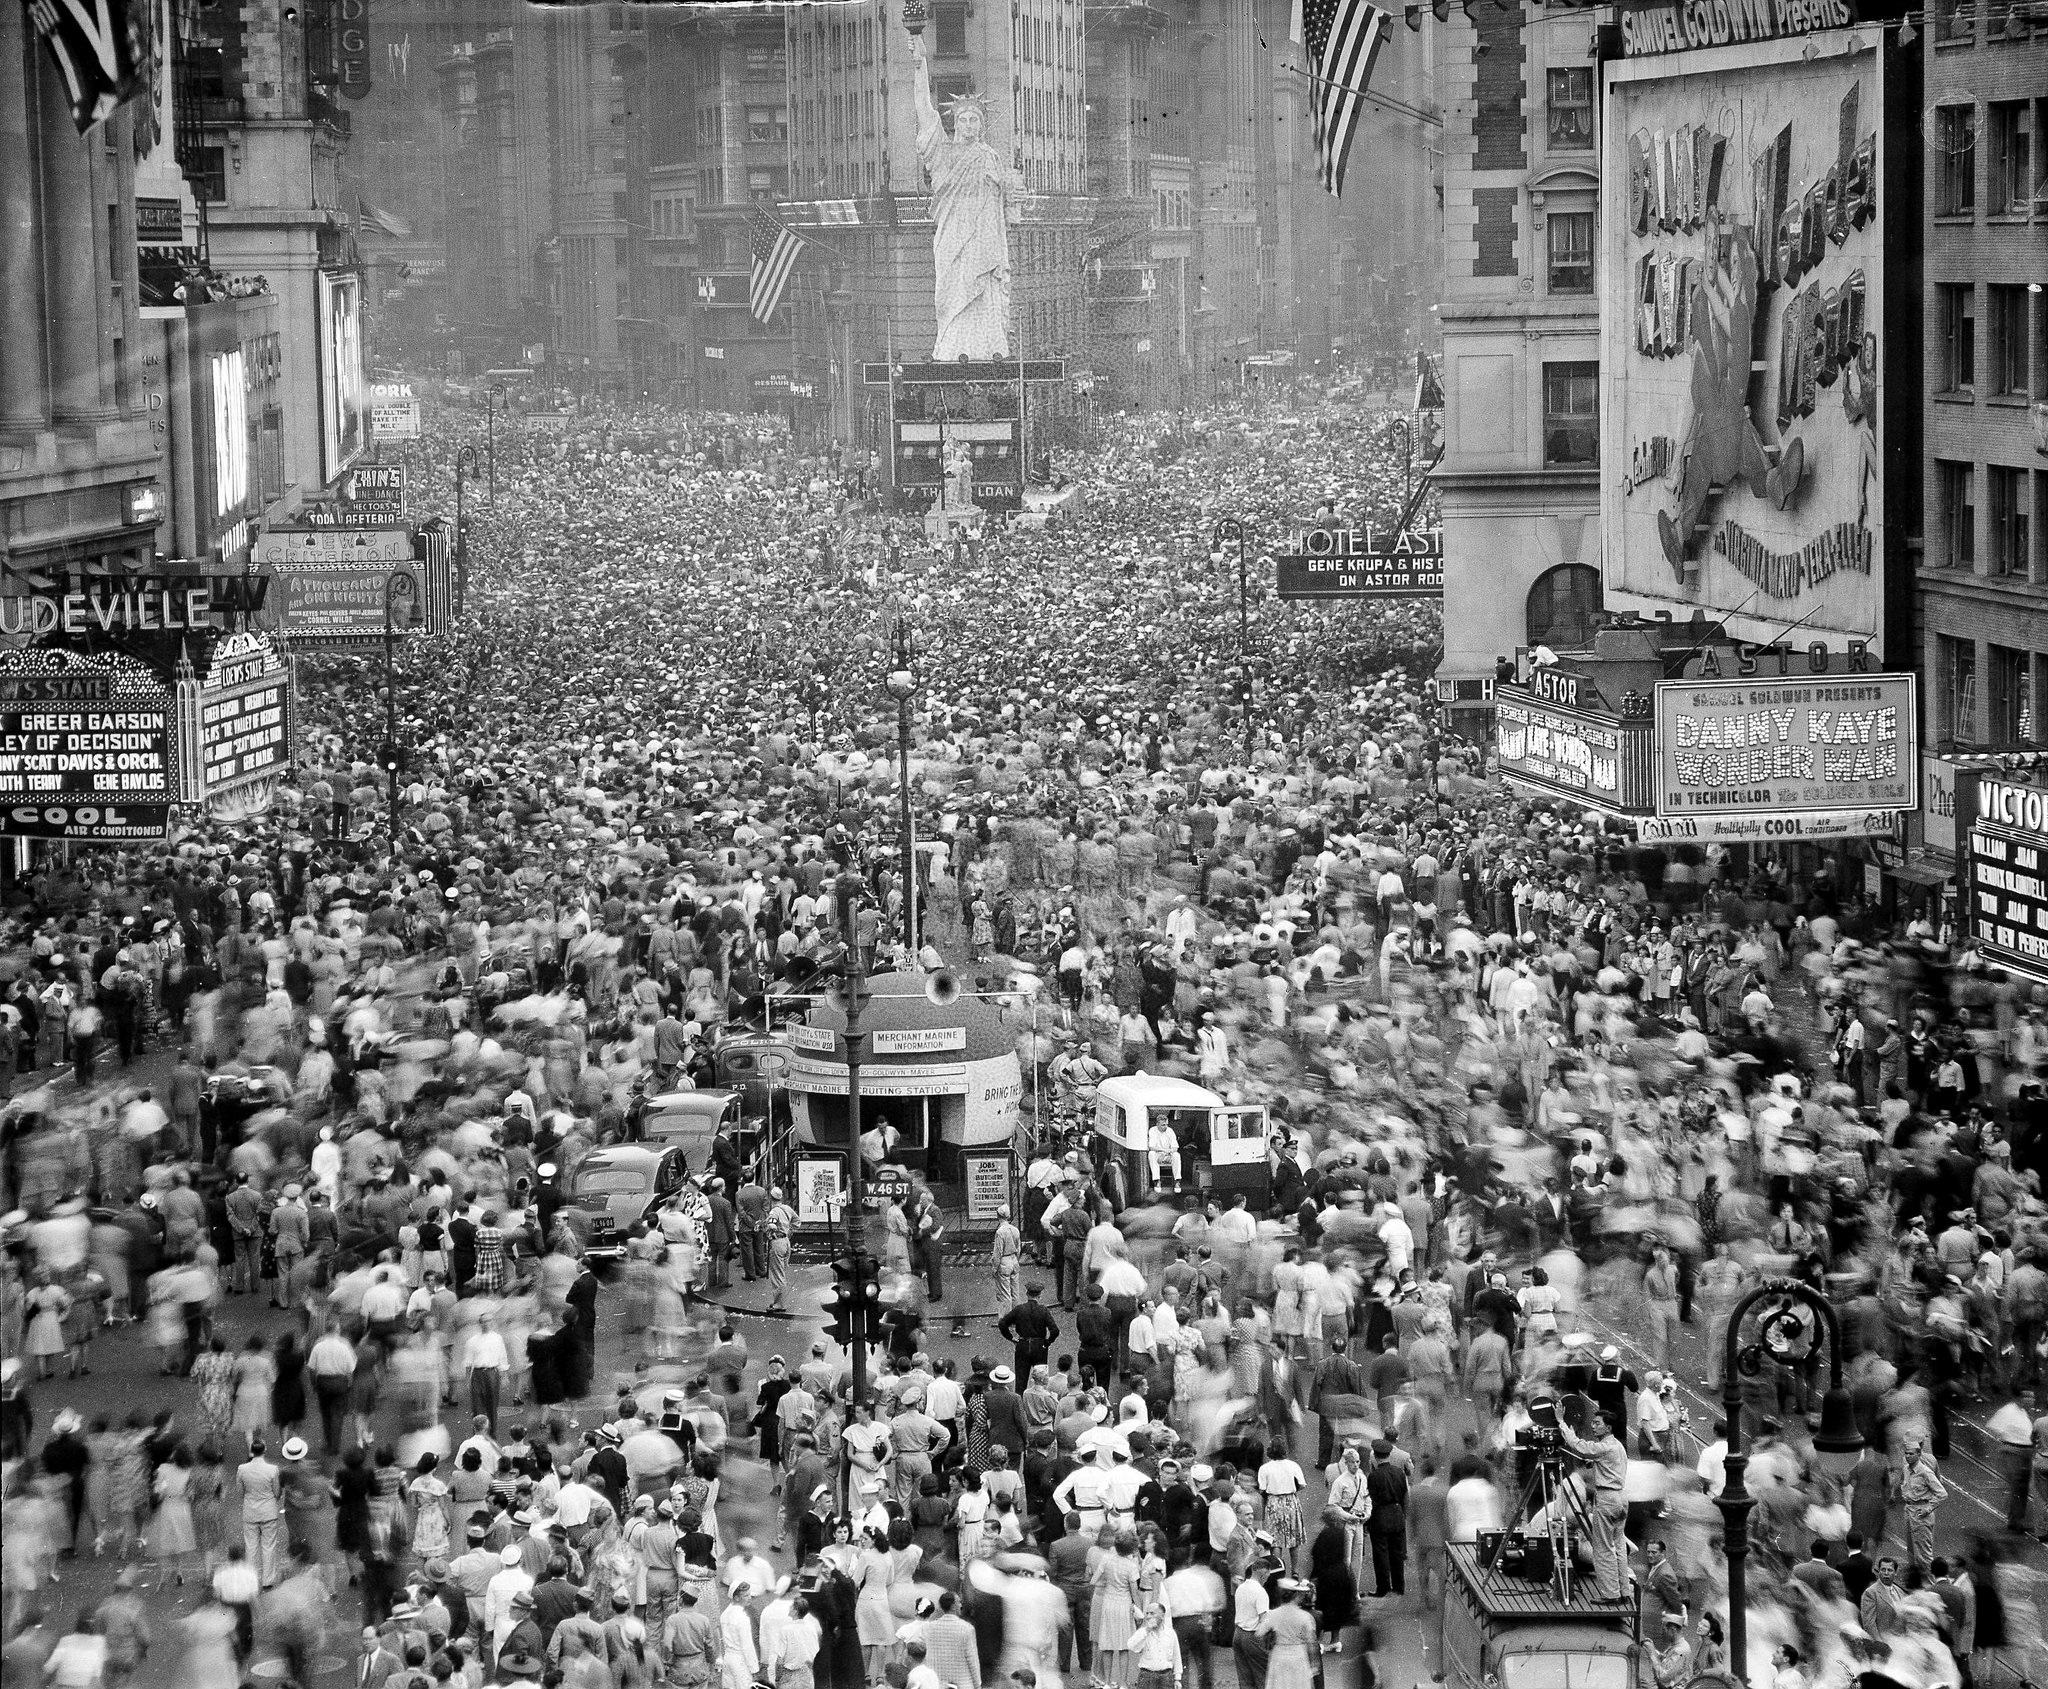 "NBC Nightly News on Twitter: ""Today in 1945, celebrations erupted across the US as Pres. Truman announced Japan's unconditional surrender in WWII."